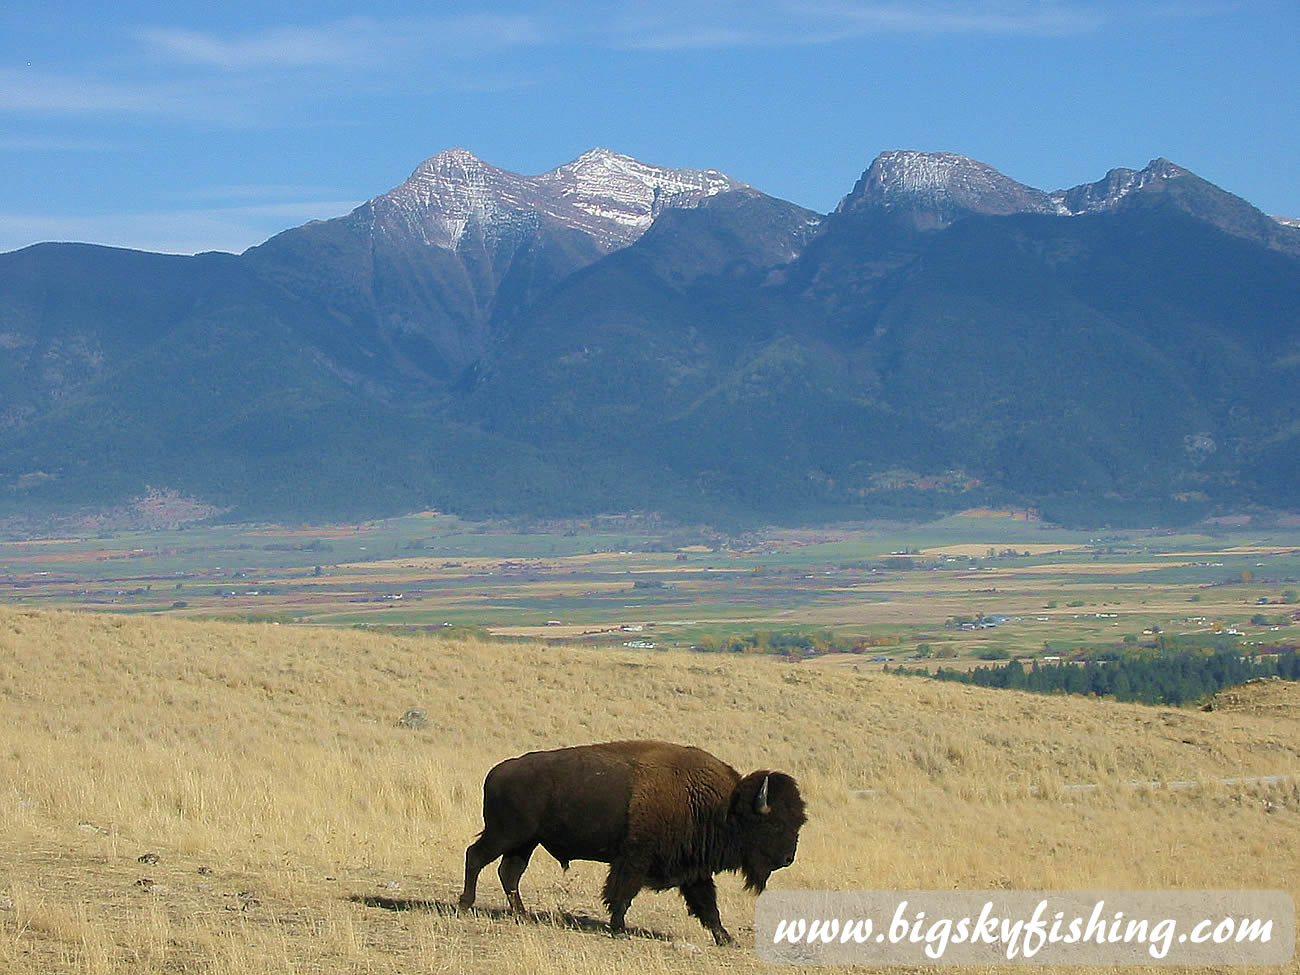 Bison Amp The Mission Mountains At The Natioinal Bison Range